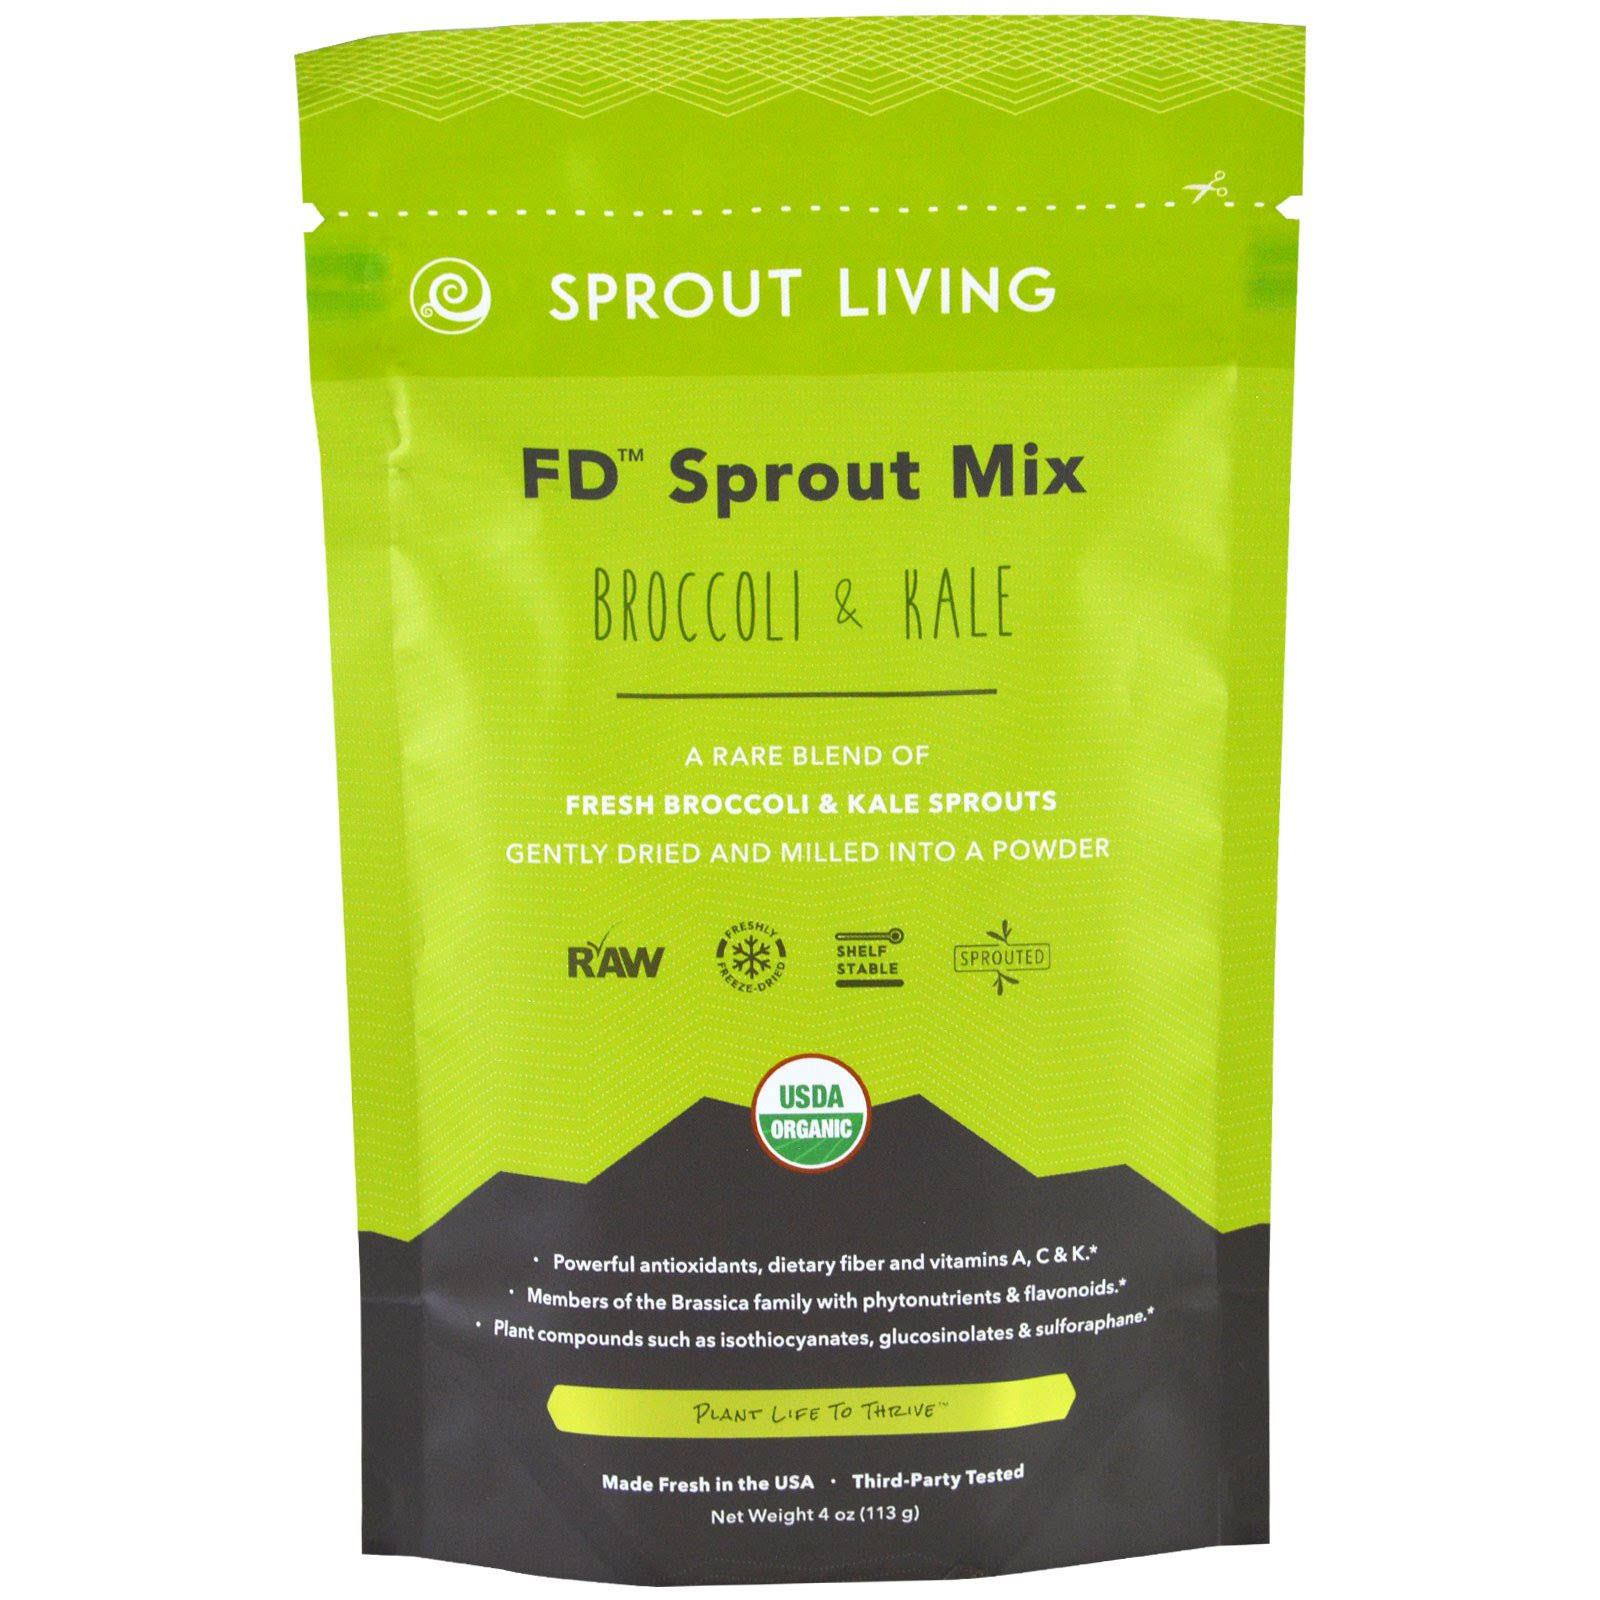 FD Sprout Mix - Broccoli and Kale, 4oz